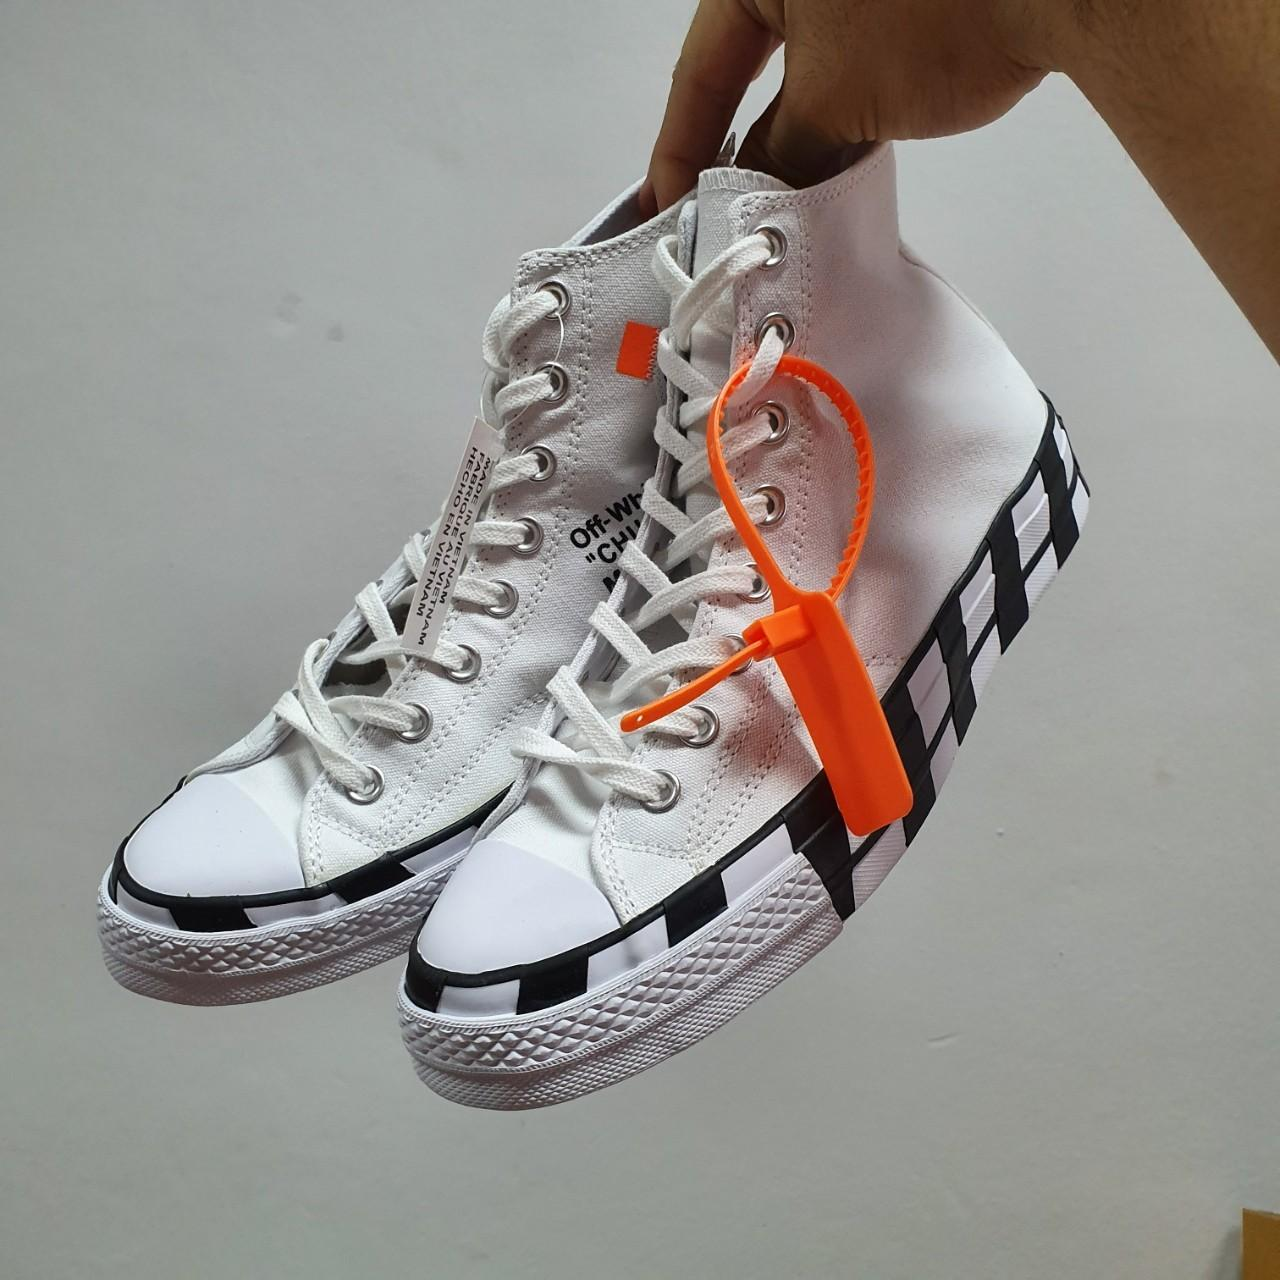 Converse Chuck Taylor All-Star 70s Hi Off-White มาใหม่